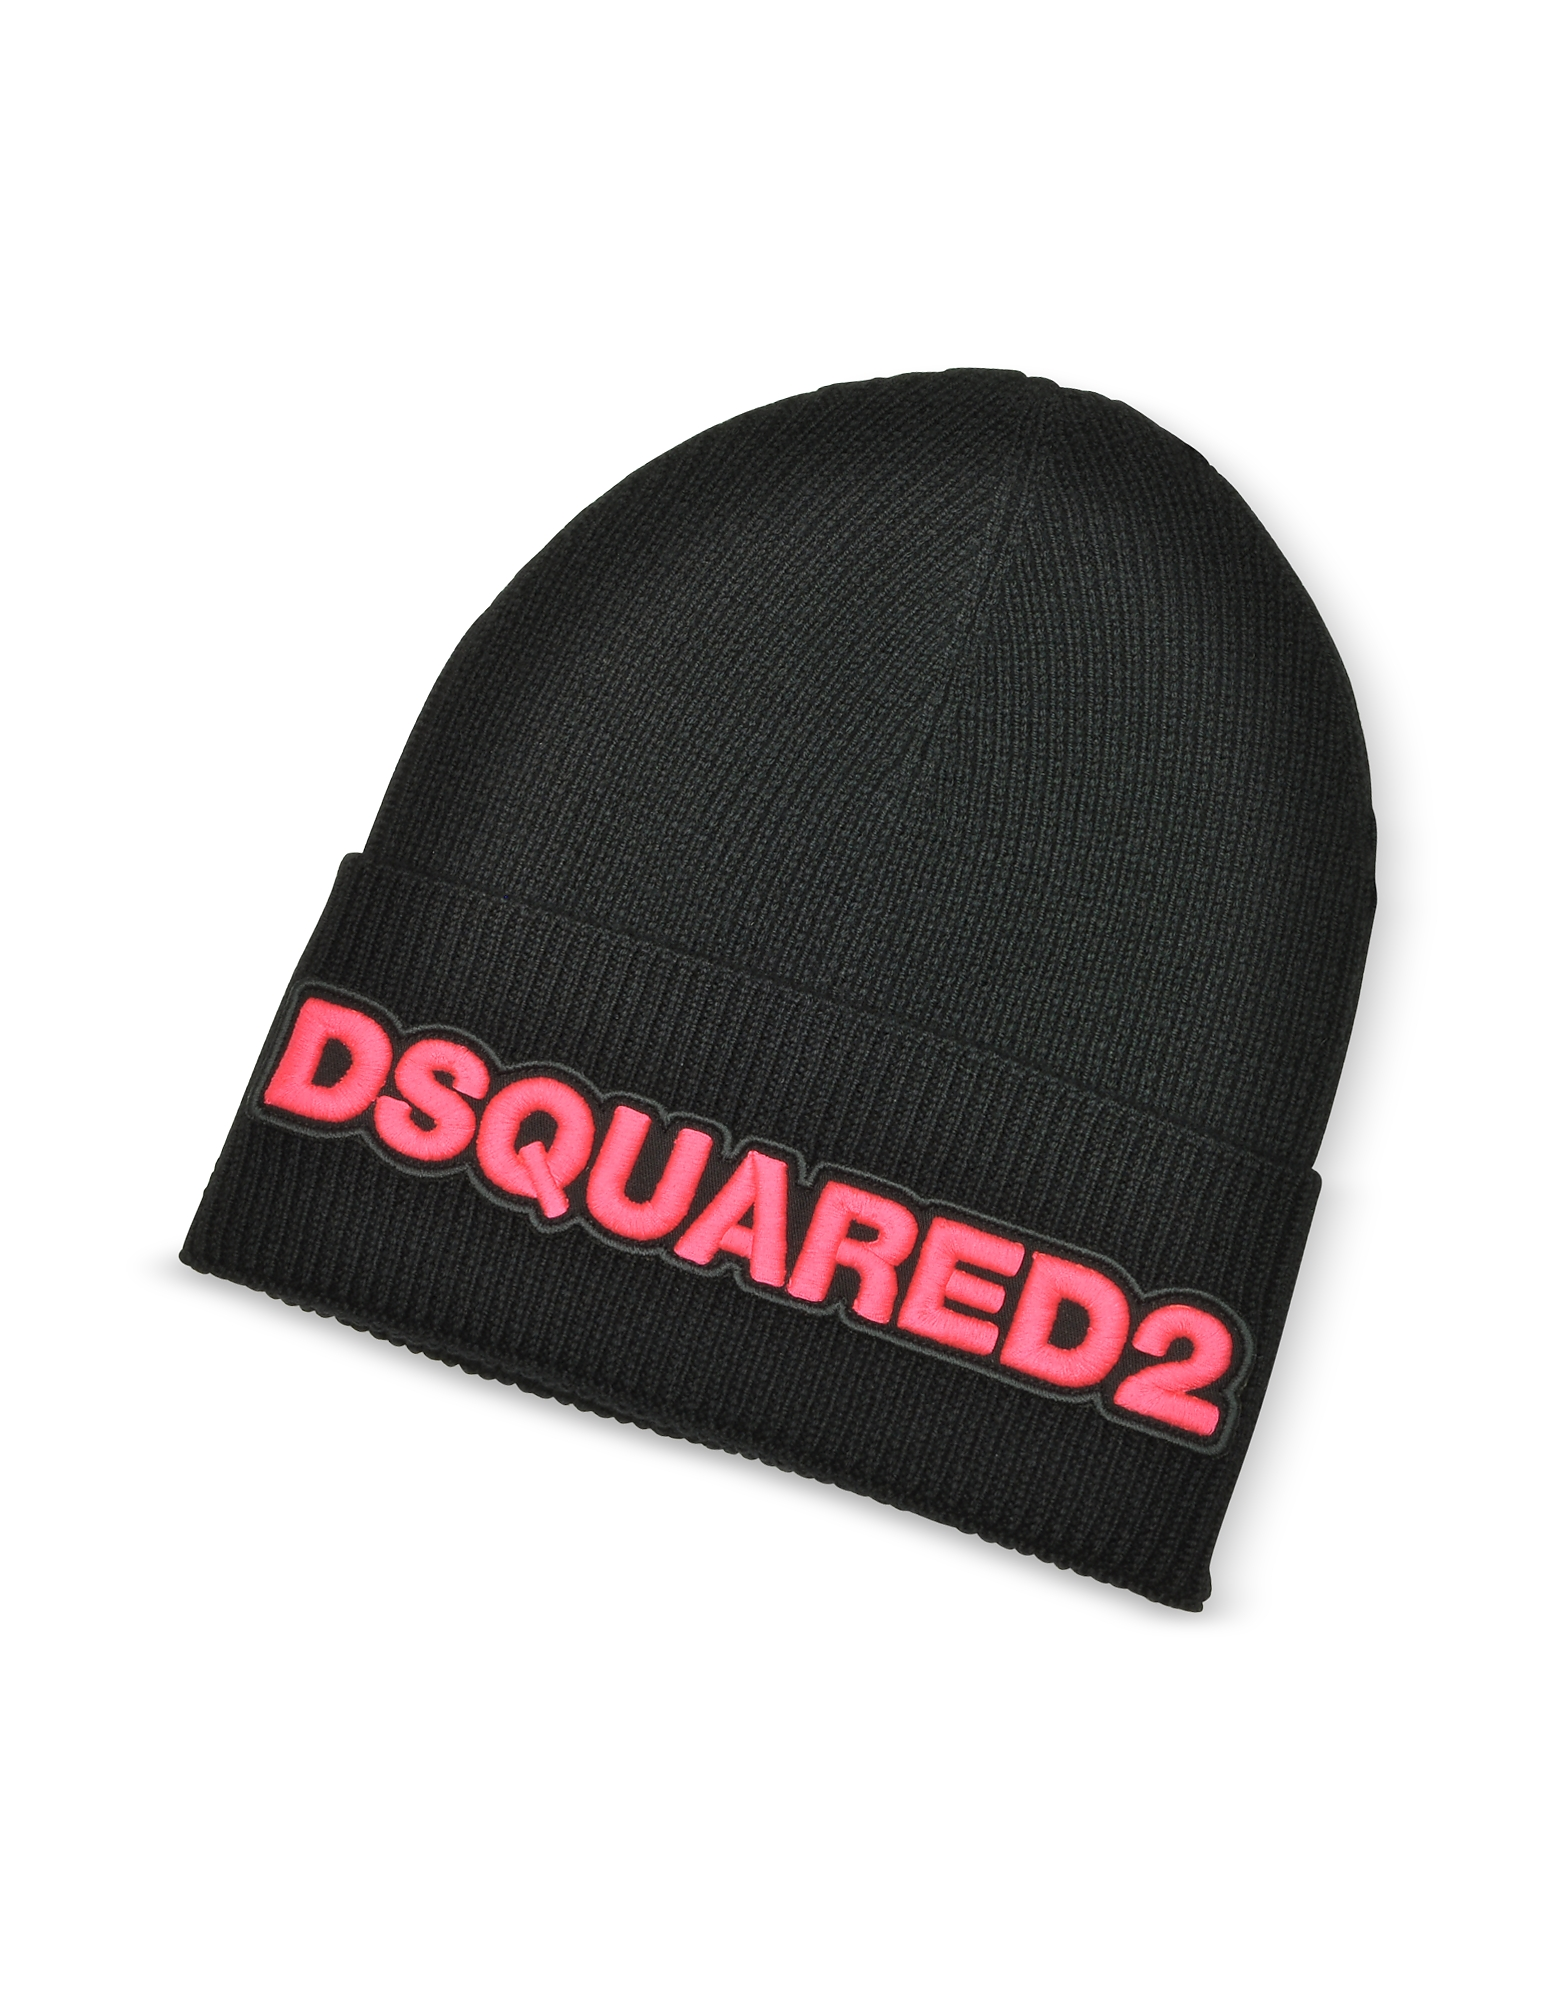 Embroidered Logo Black and Neon Pink Wool Beanie